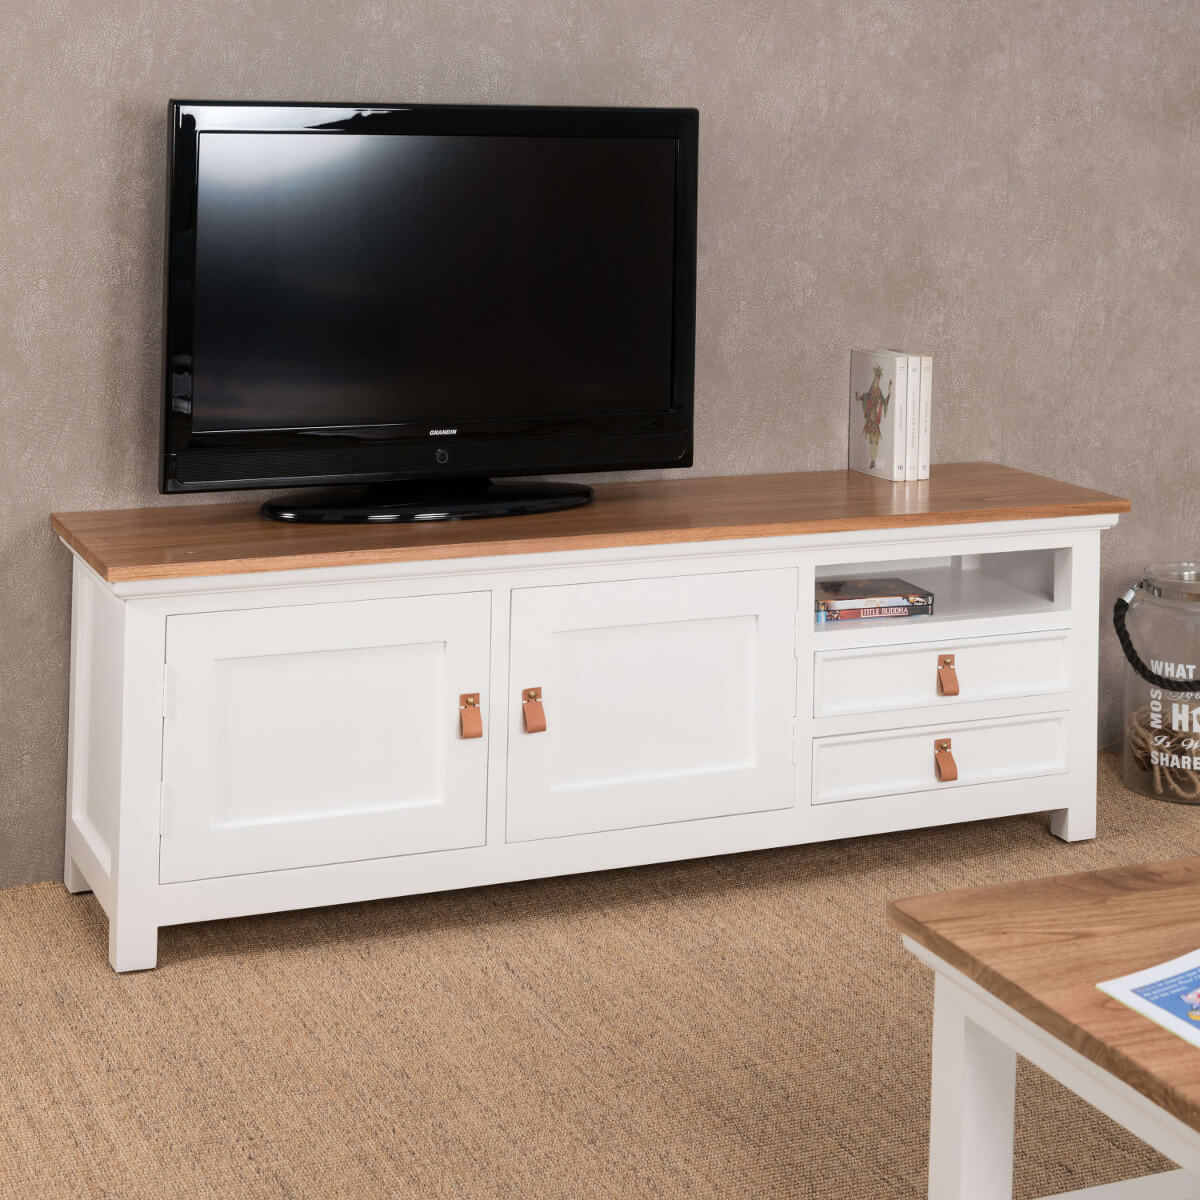 Meuble tv salon bois massif teck et pin chic rectangle for Banc tv blanc et bois